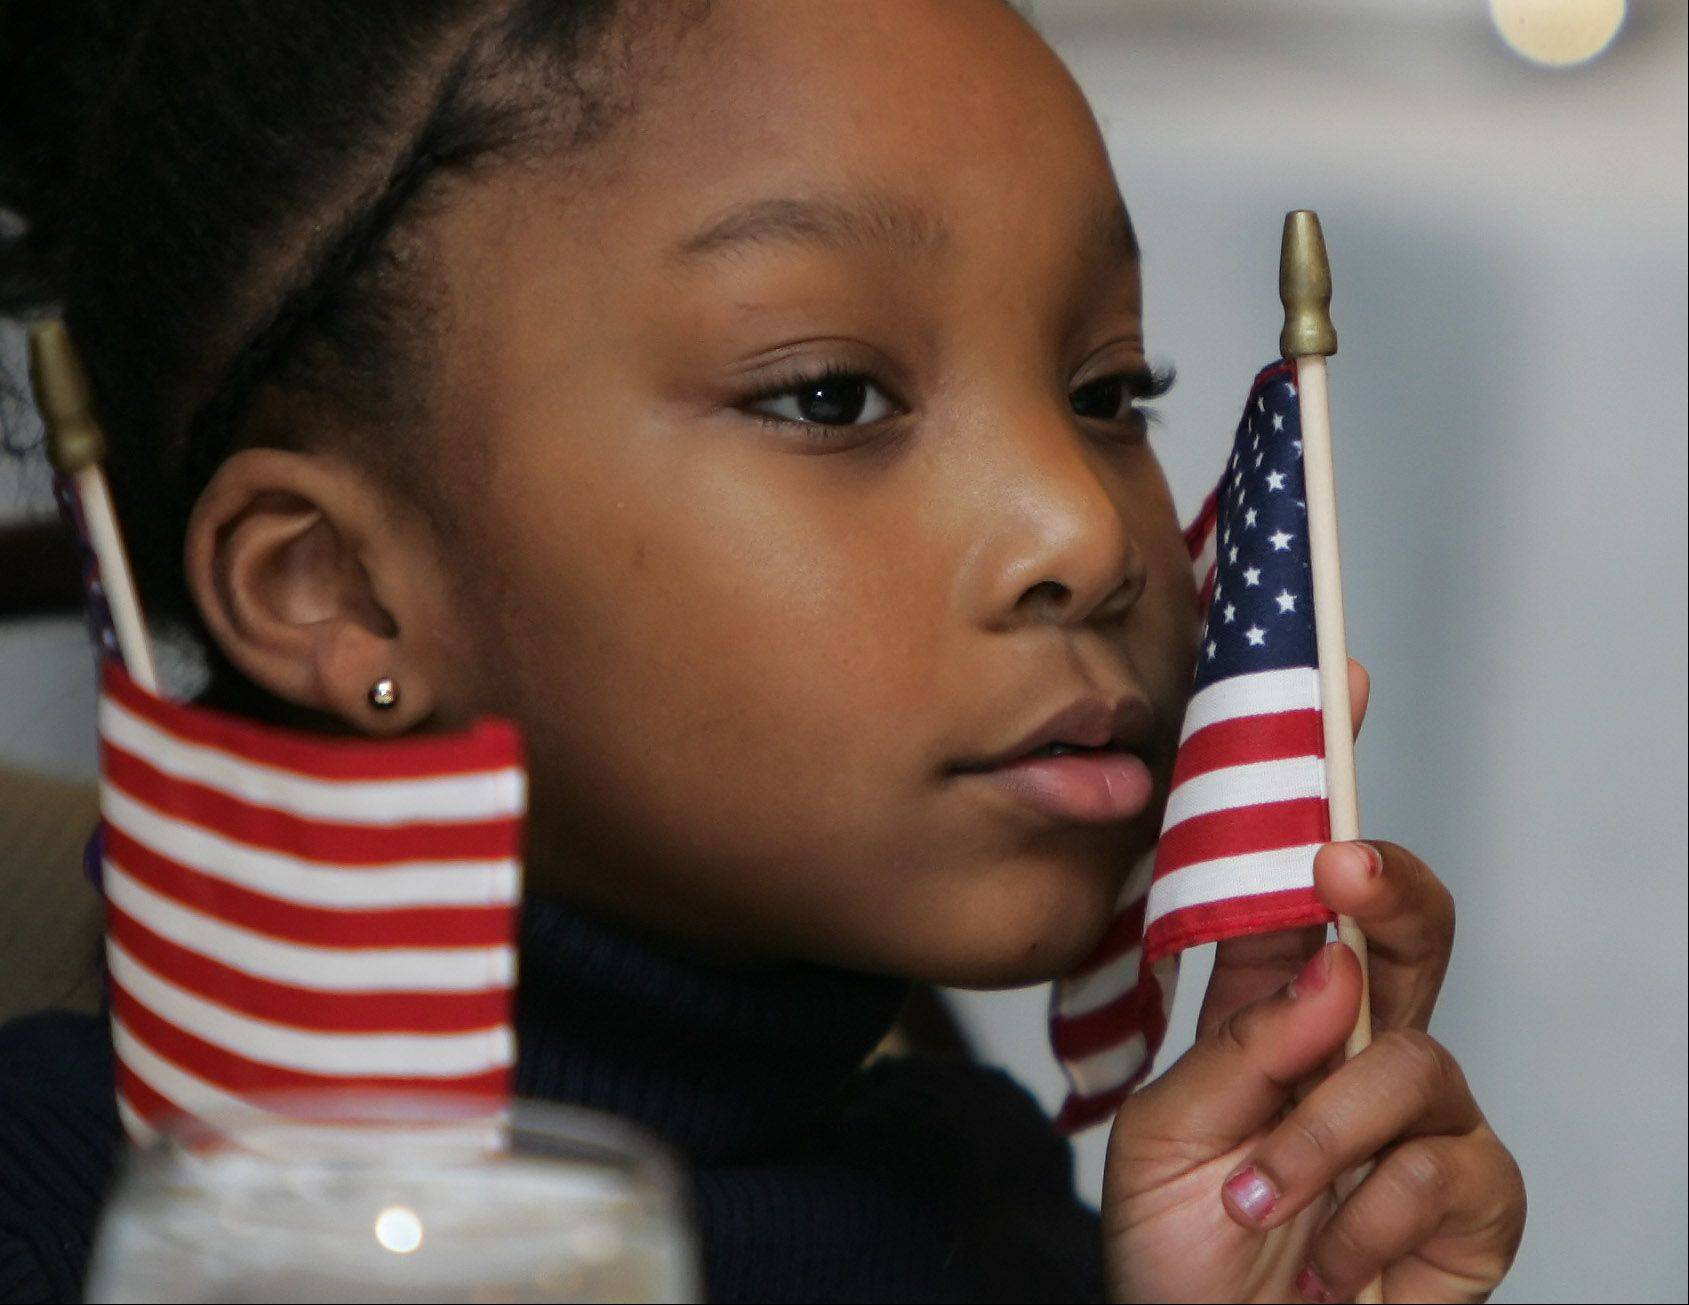 Six-year-old Makayla Bowles, of Zion, holds a flag as she watches the President Barack Obama Inauguration event Monday at the Holiday Inn - Gurnee Convention Center. Several large-screen televisions were in place for people to watch the inauguration sponsored by the Black Chamber of Commerce of Lake County.